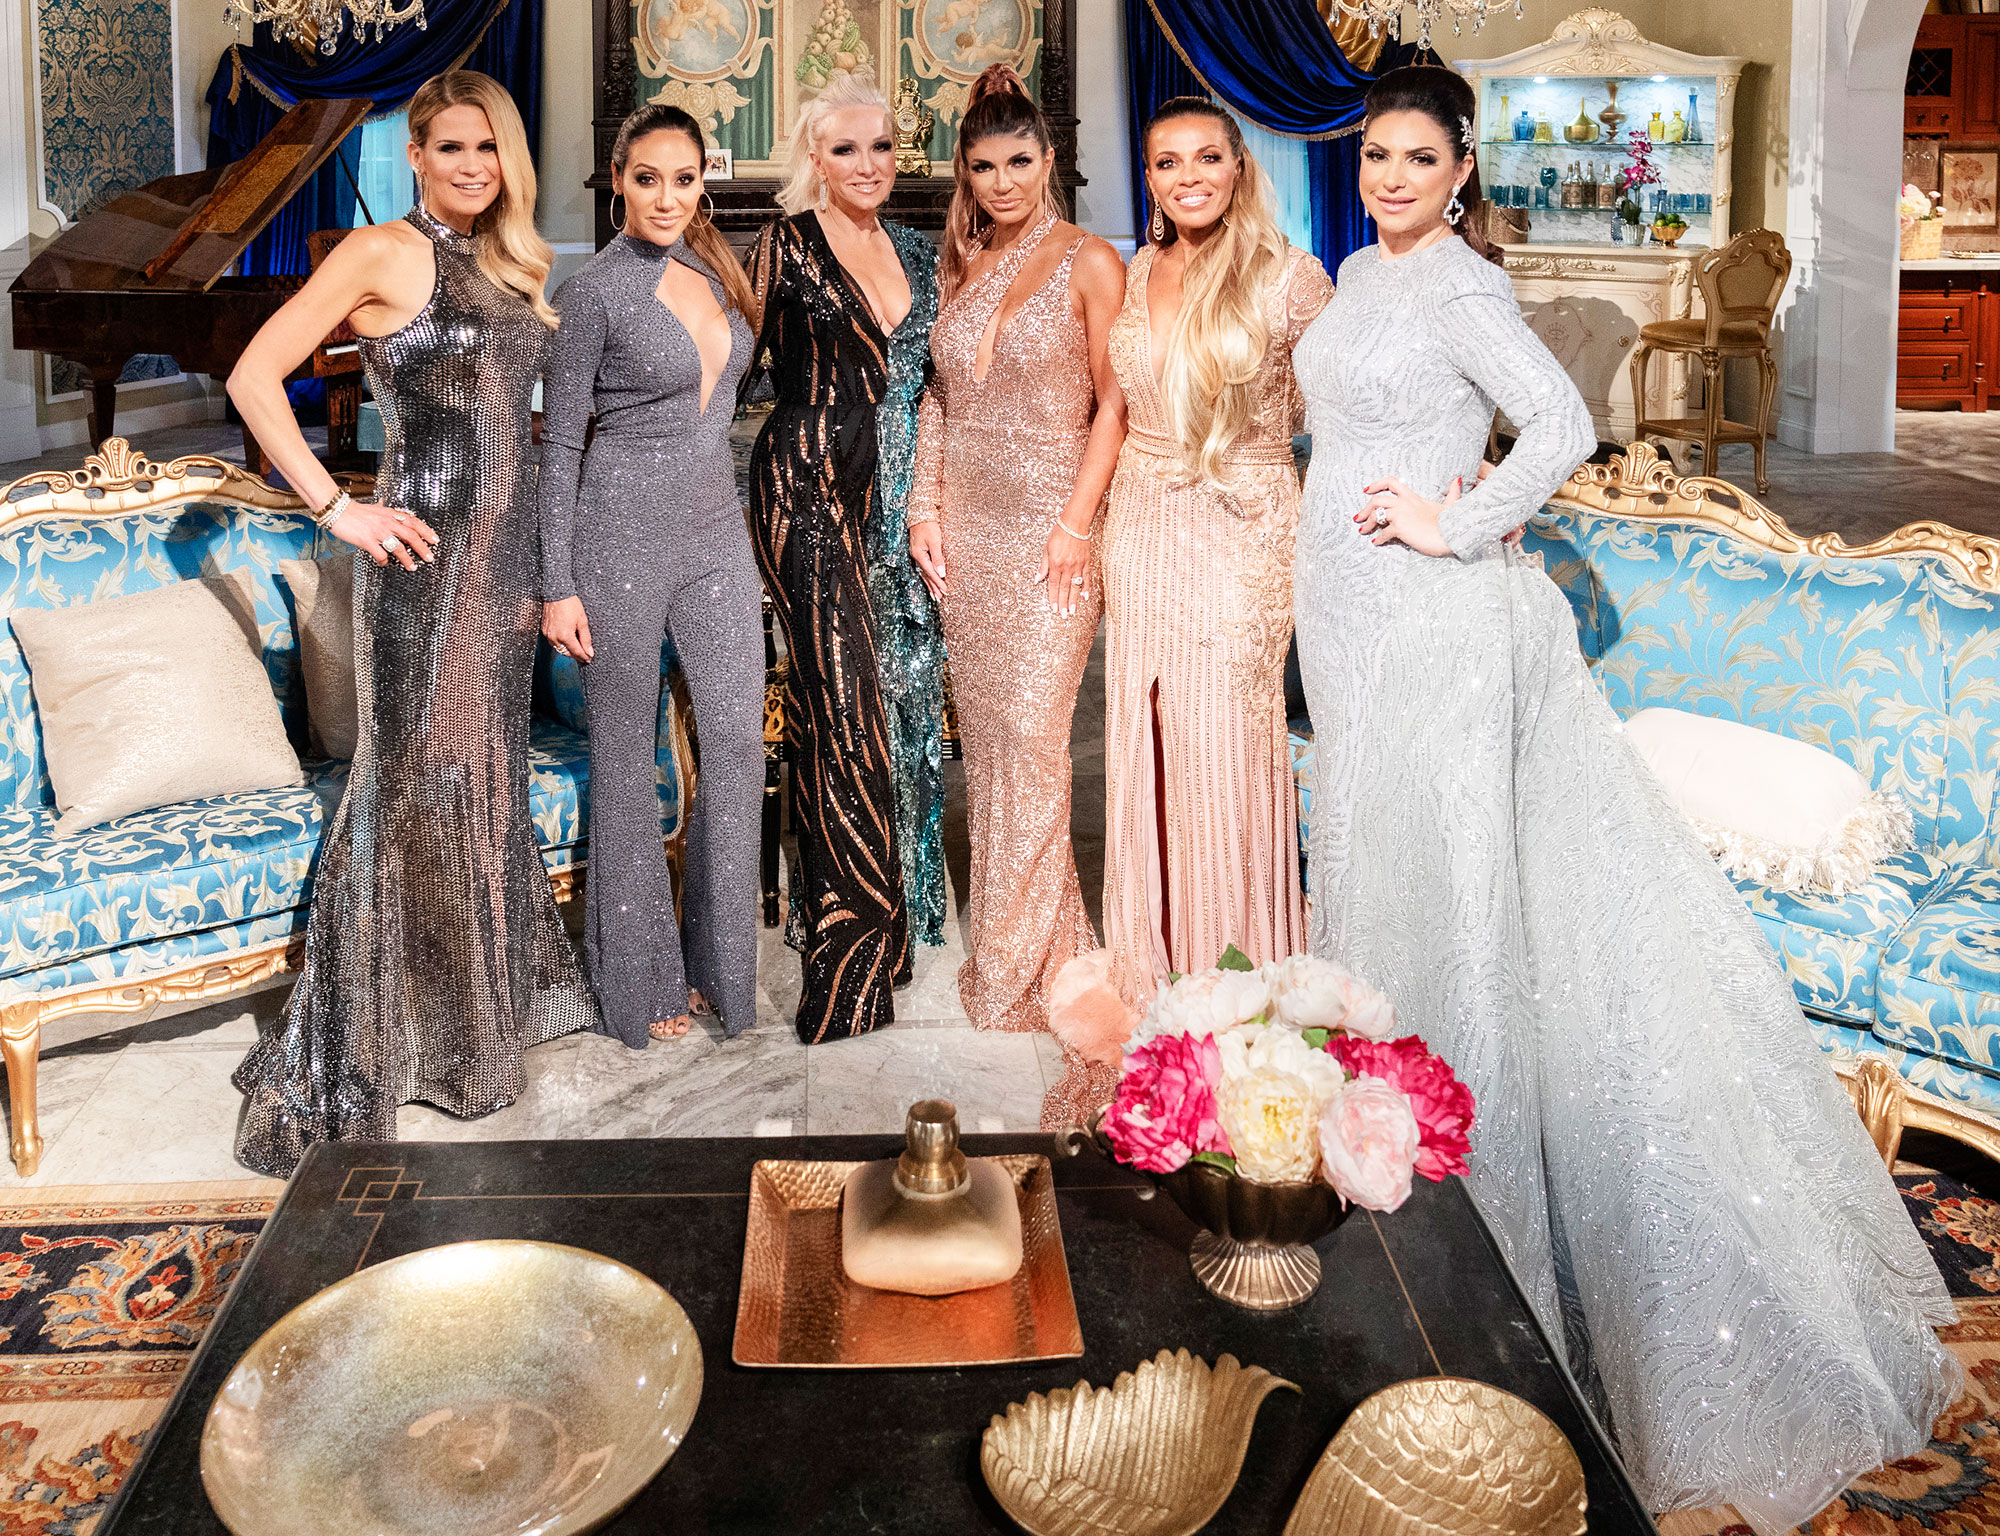 Andy Cohen Reveals the 'Real Housewives of New Jersey' Season 10 Reunion 'Delivered'